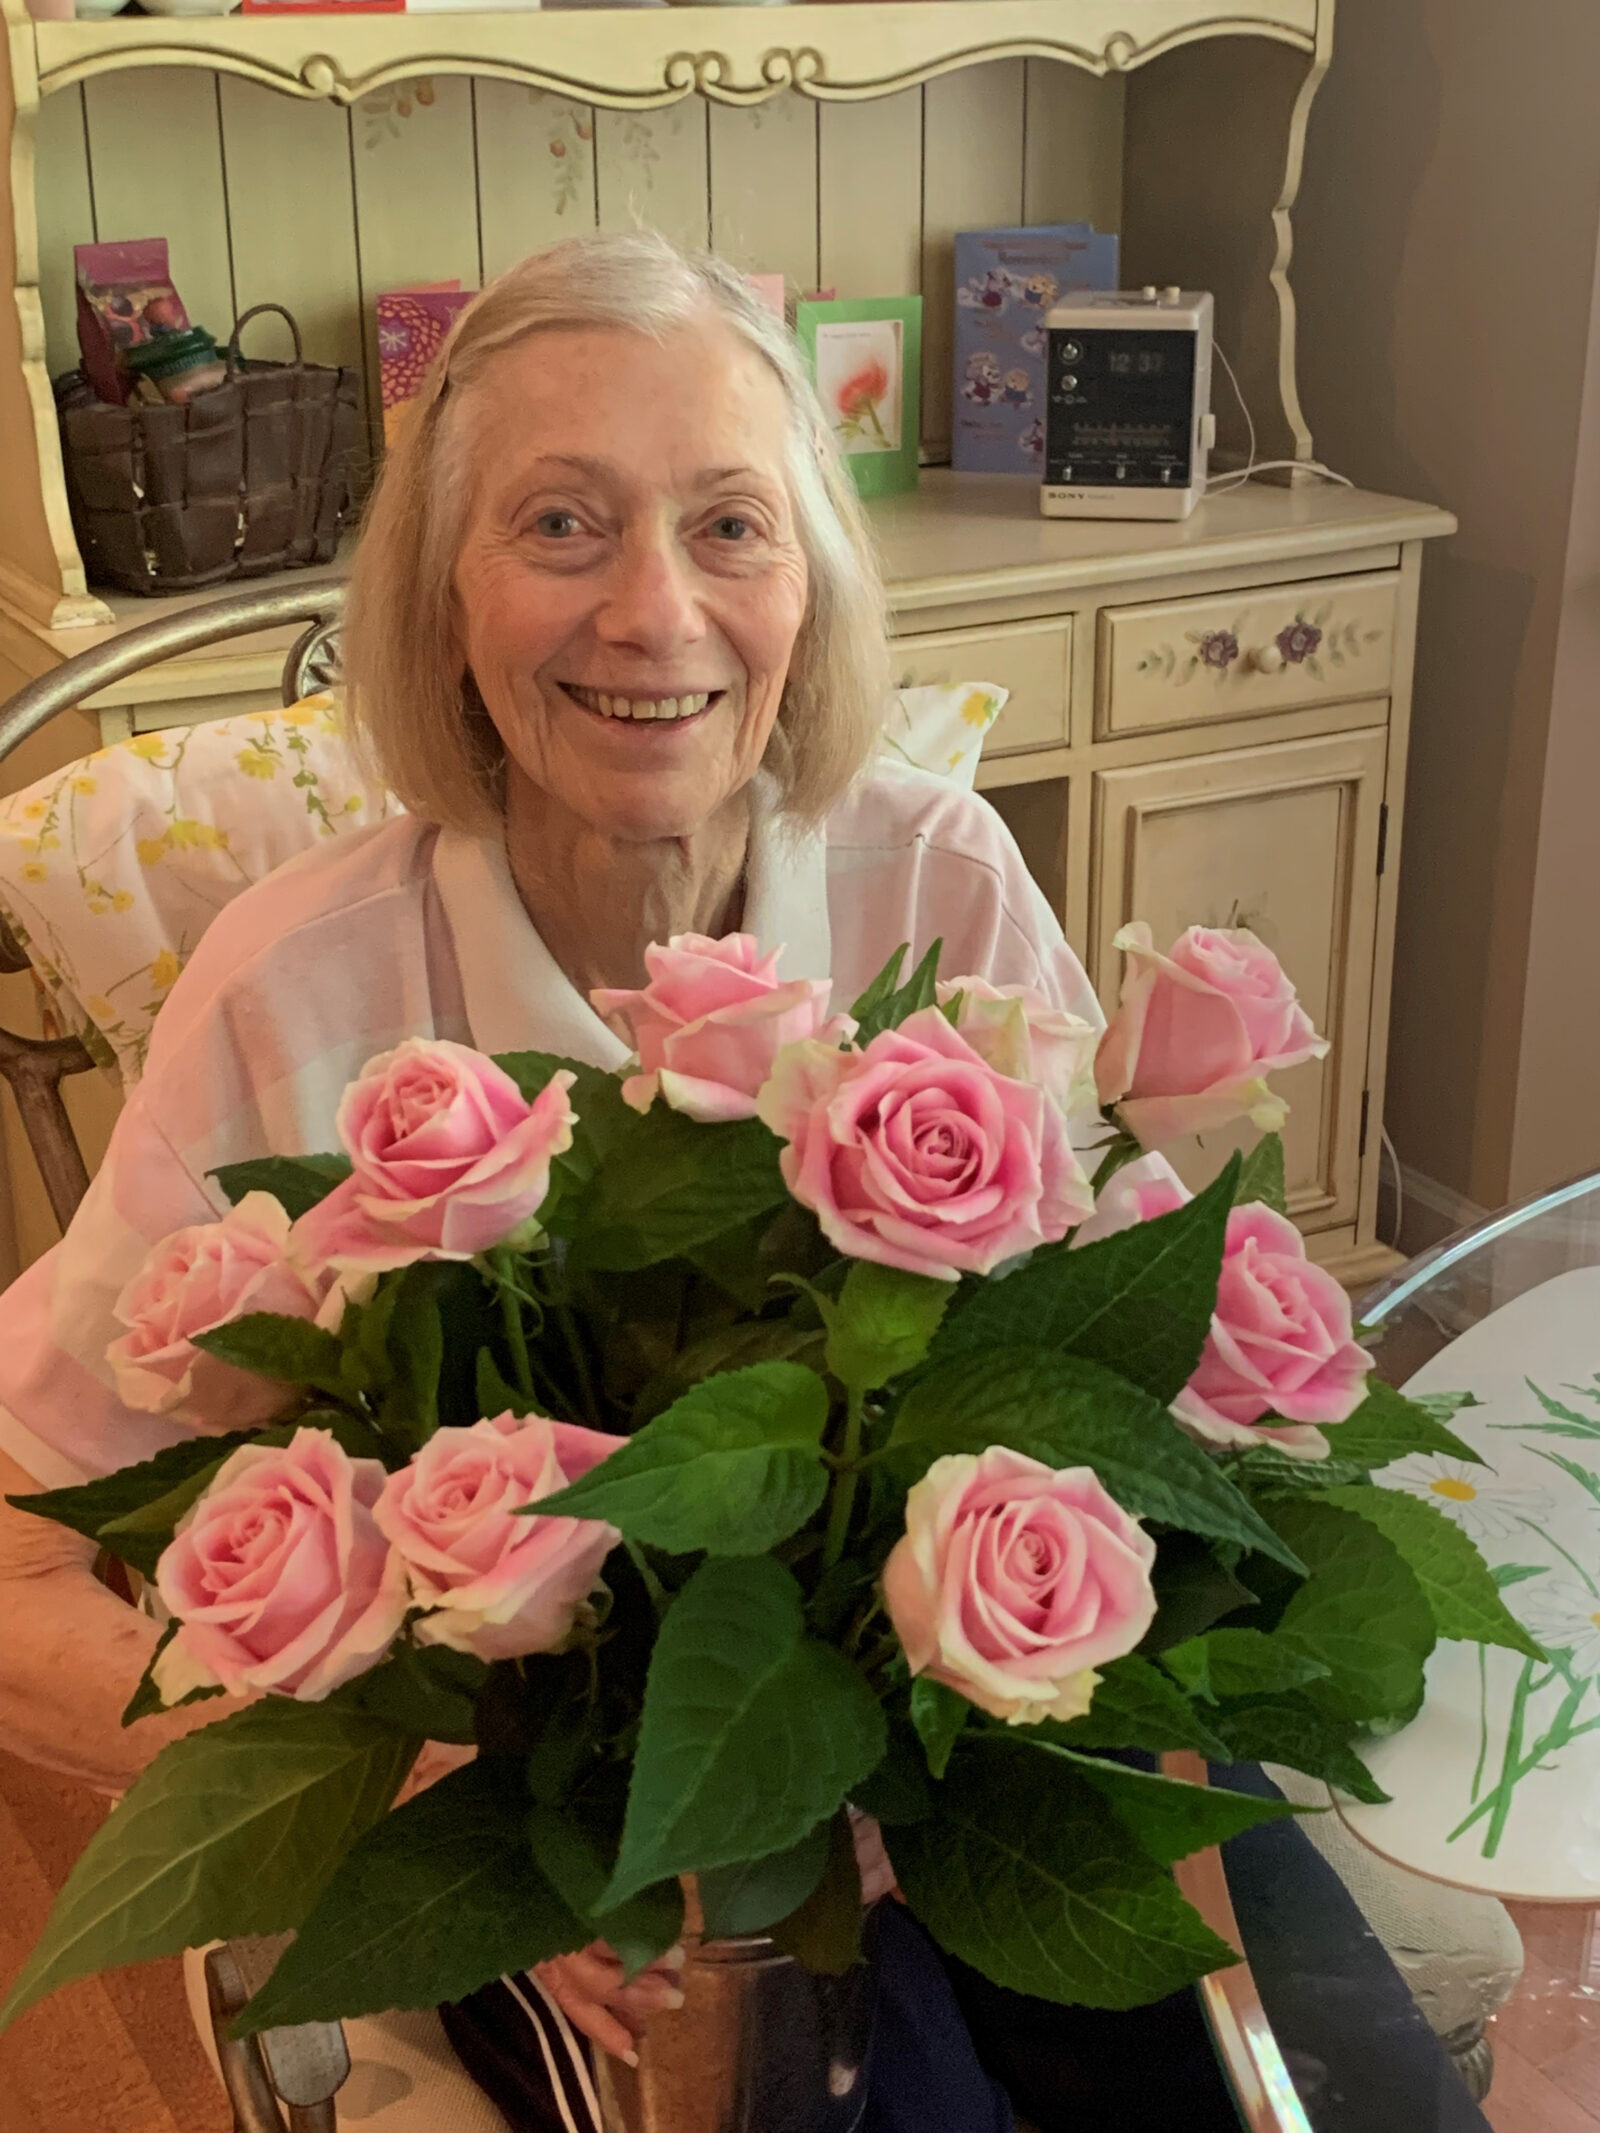 Caregiver Alpharetta GA - Happy Mother's Day from Real McCoy Home Care